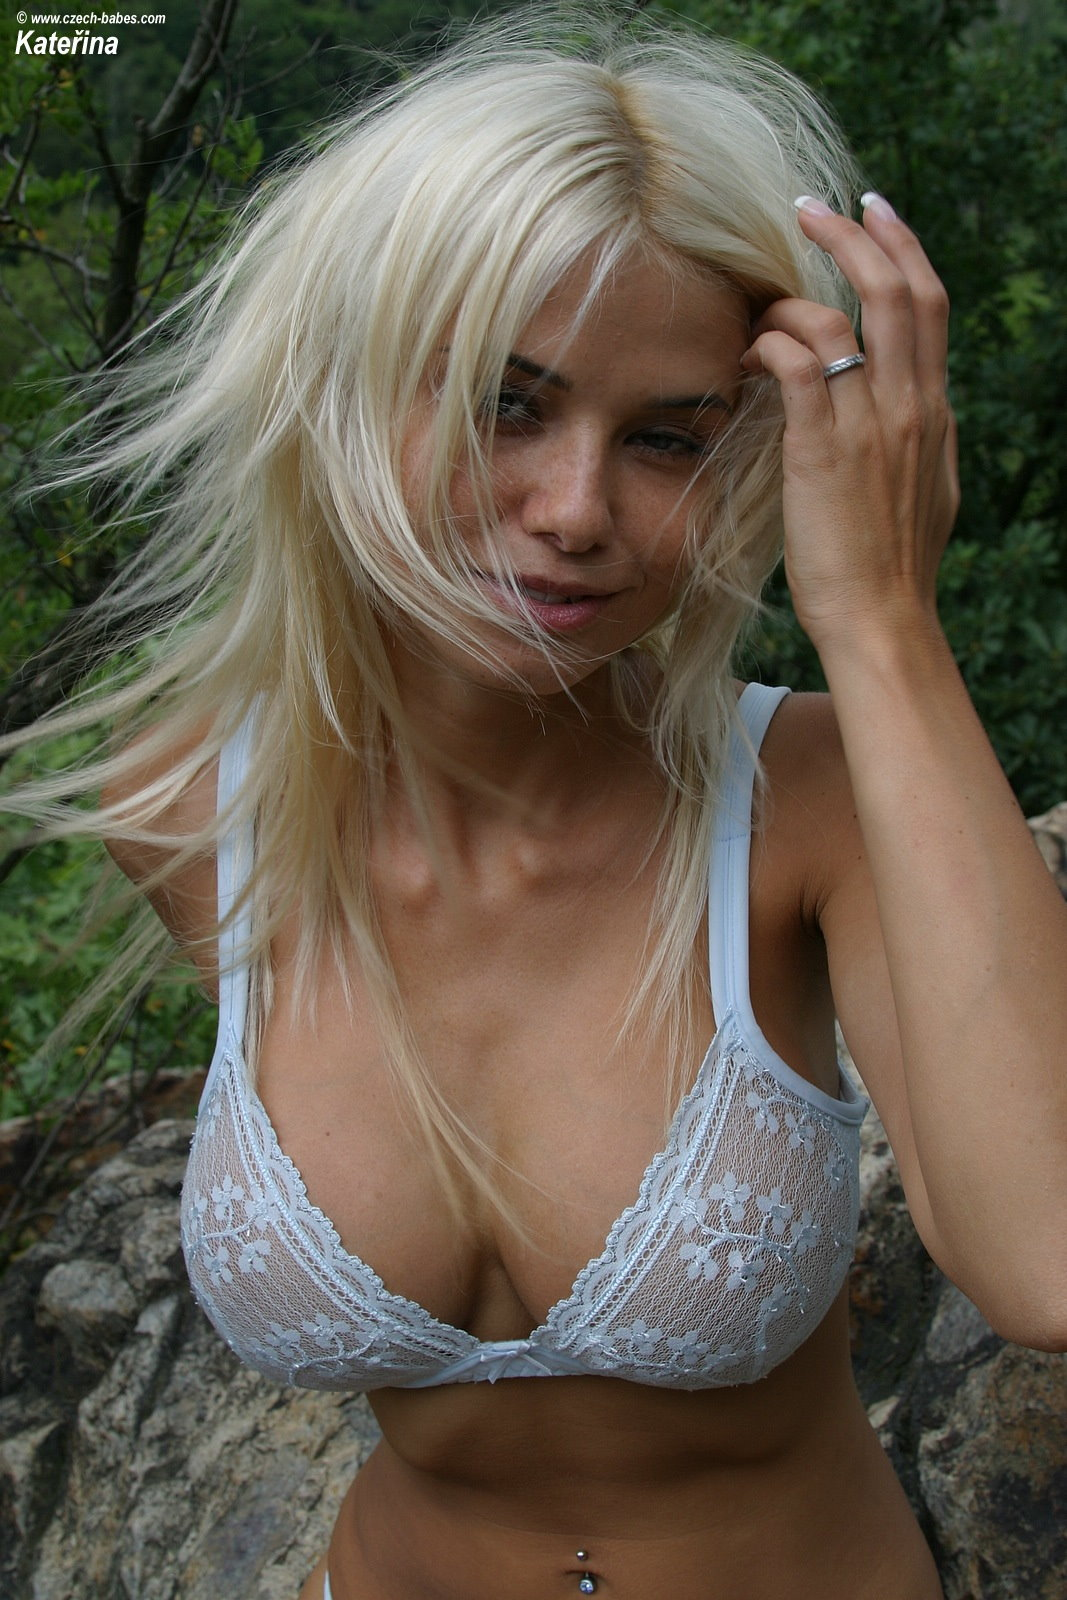 katerina-nude-mountain-lingerie-huge-tits-blonde-01